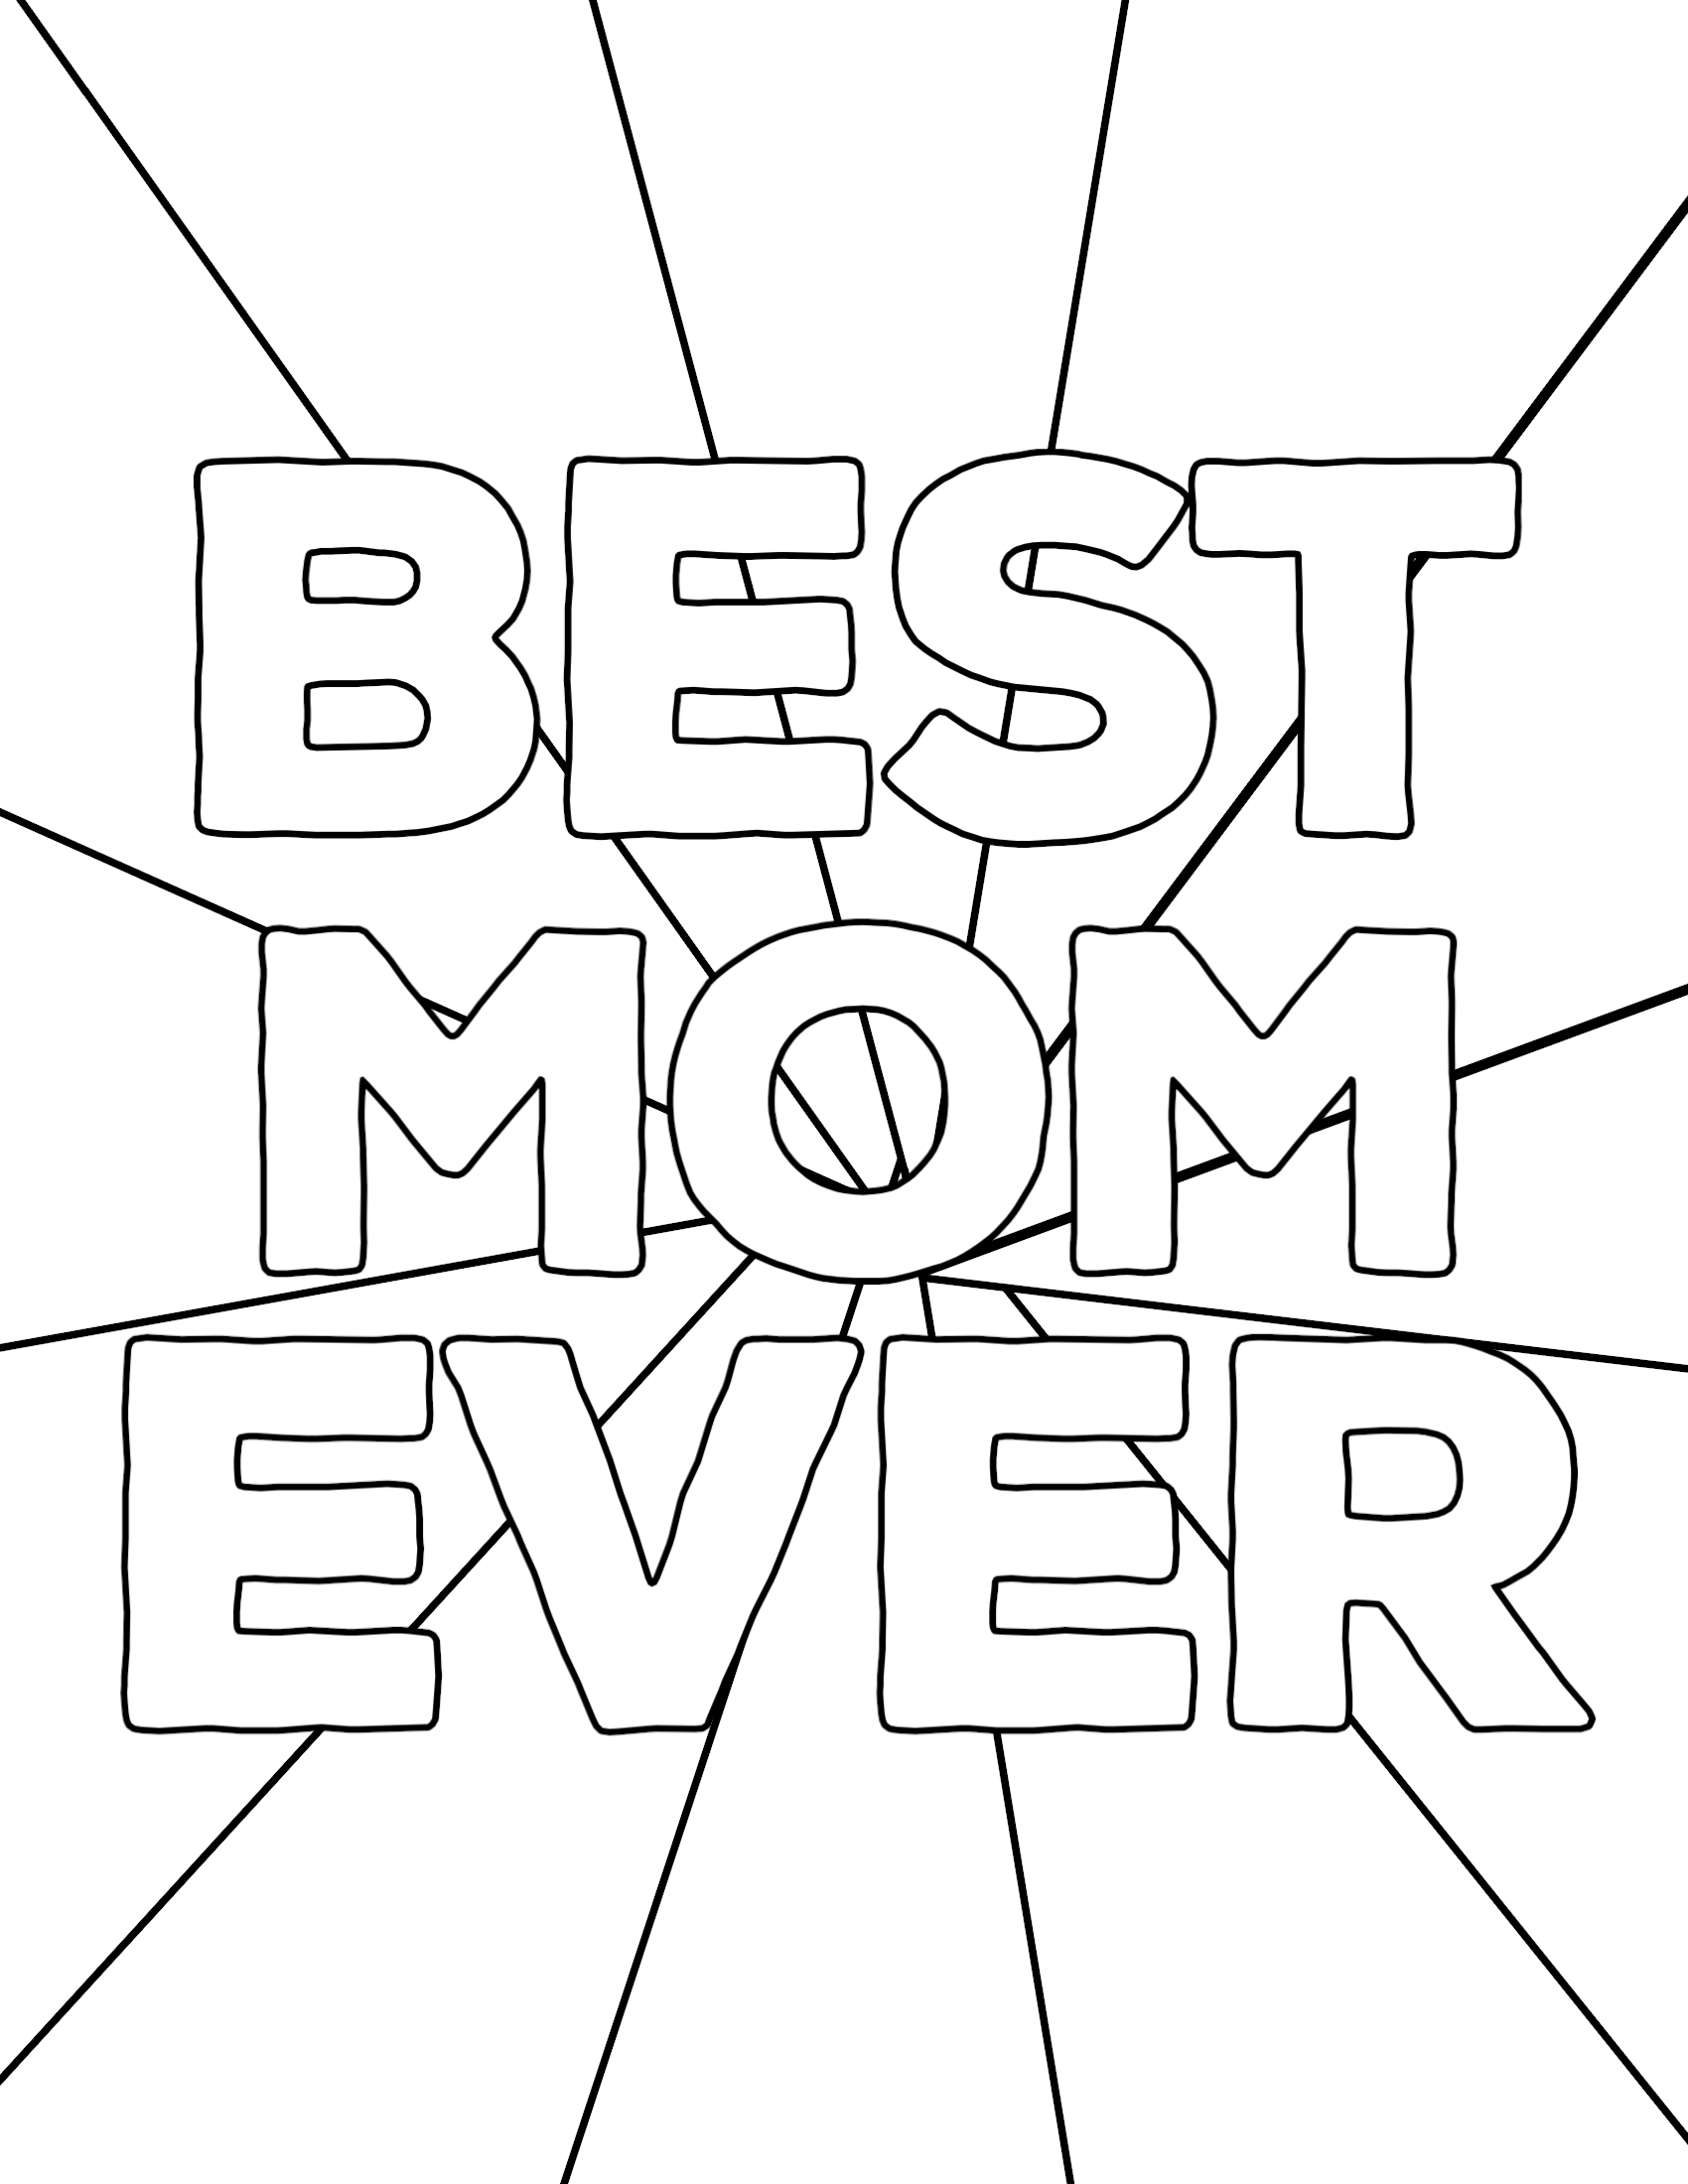 Free Printable Mother's Day Coloring Pages | Paper Trail Design